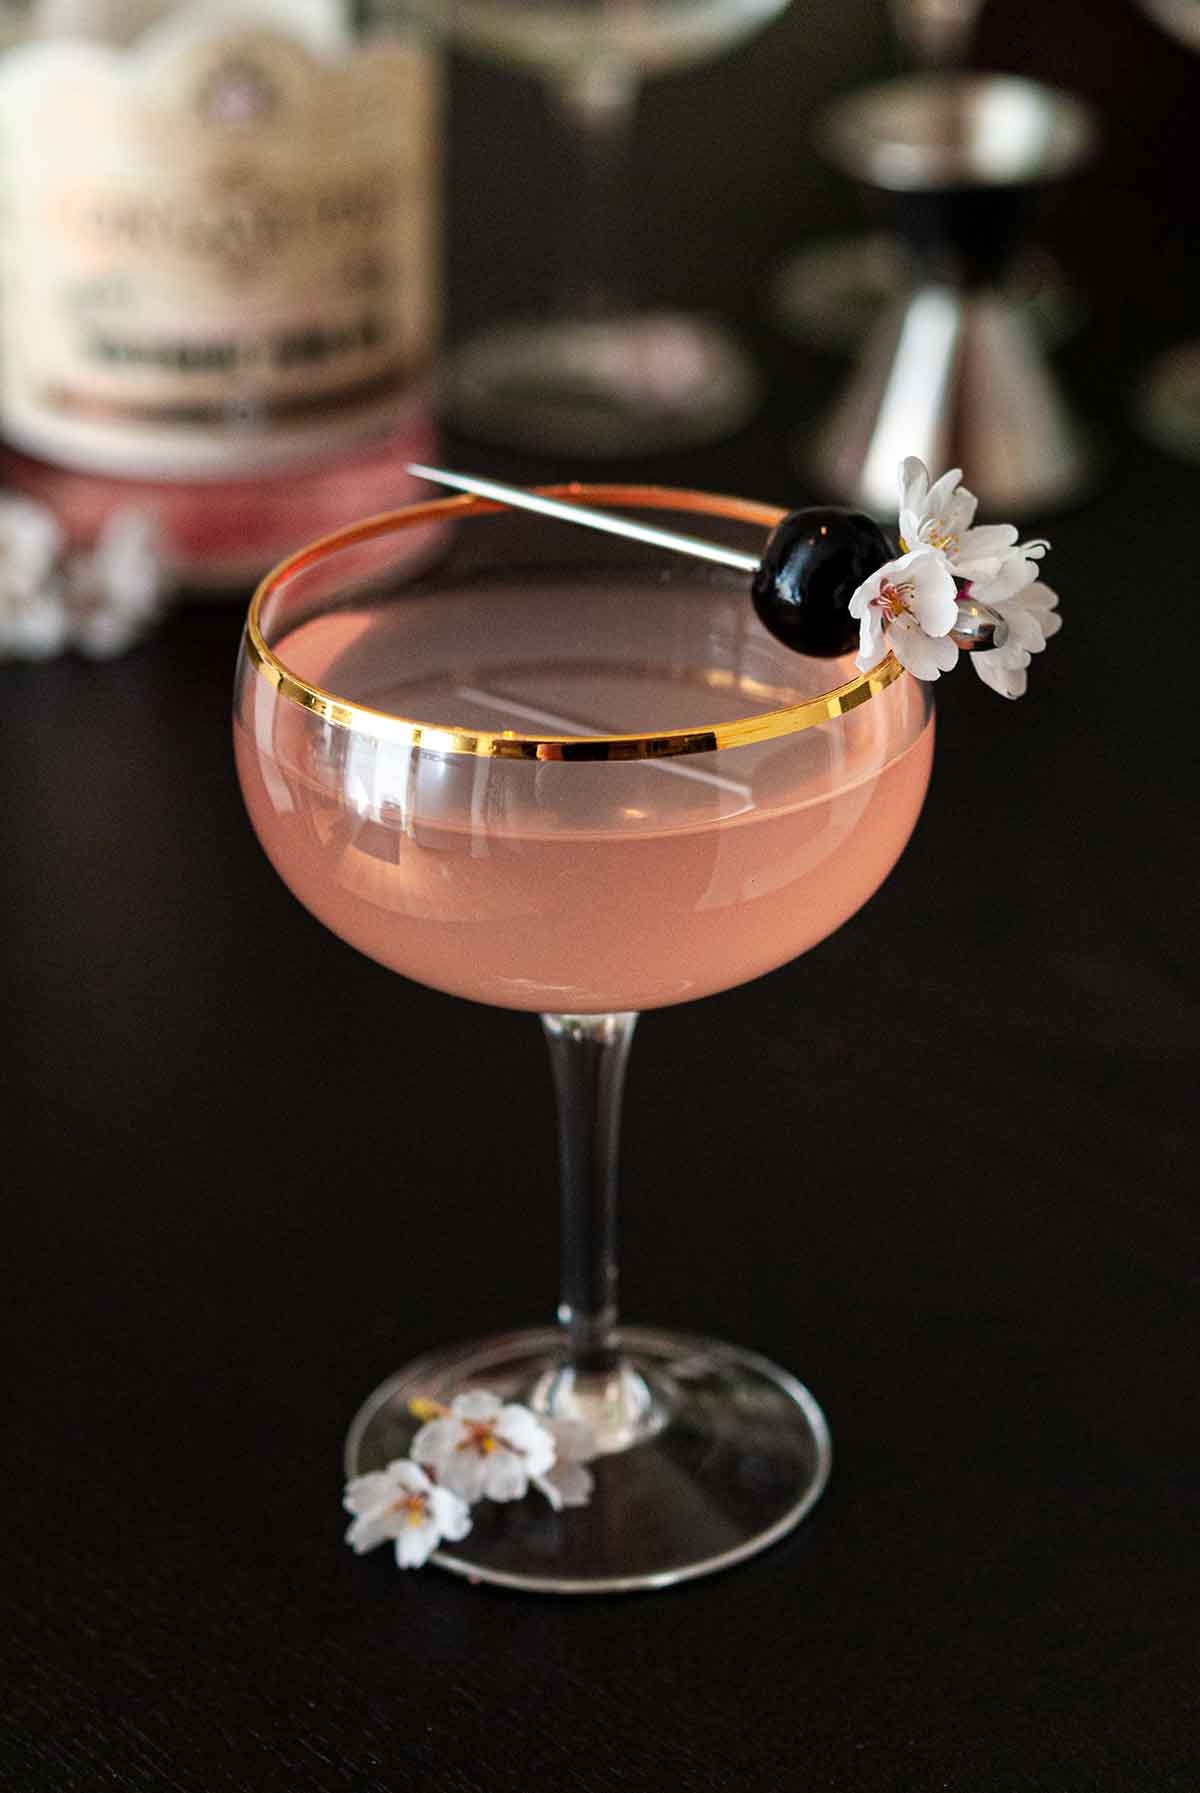 A pink cocktail in a coup glass, garnished with a cherry and flowers, on a table.